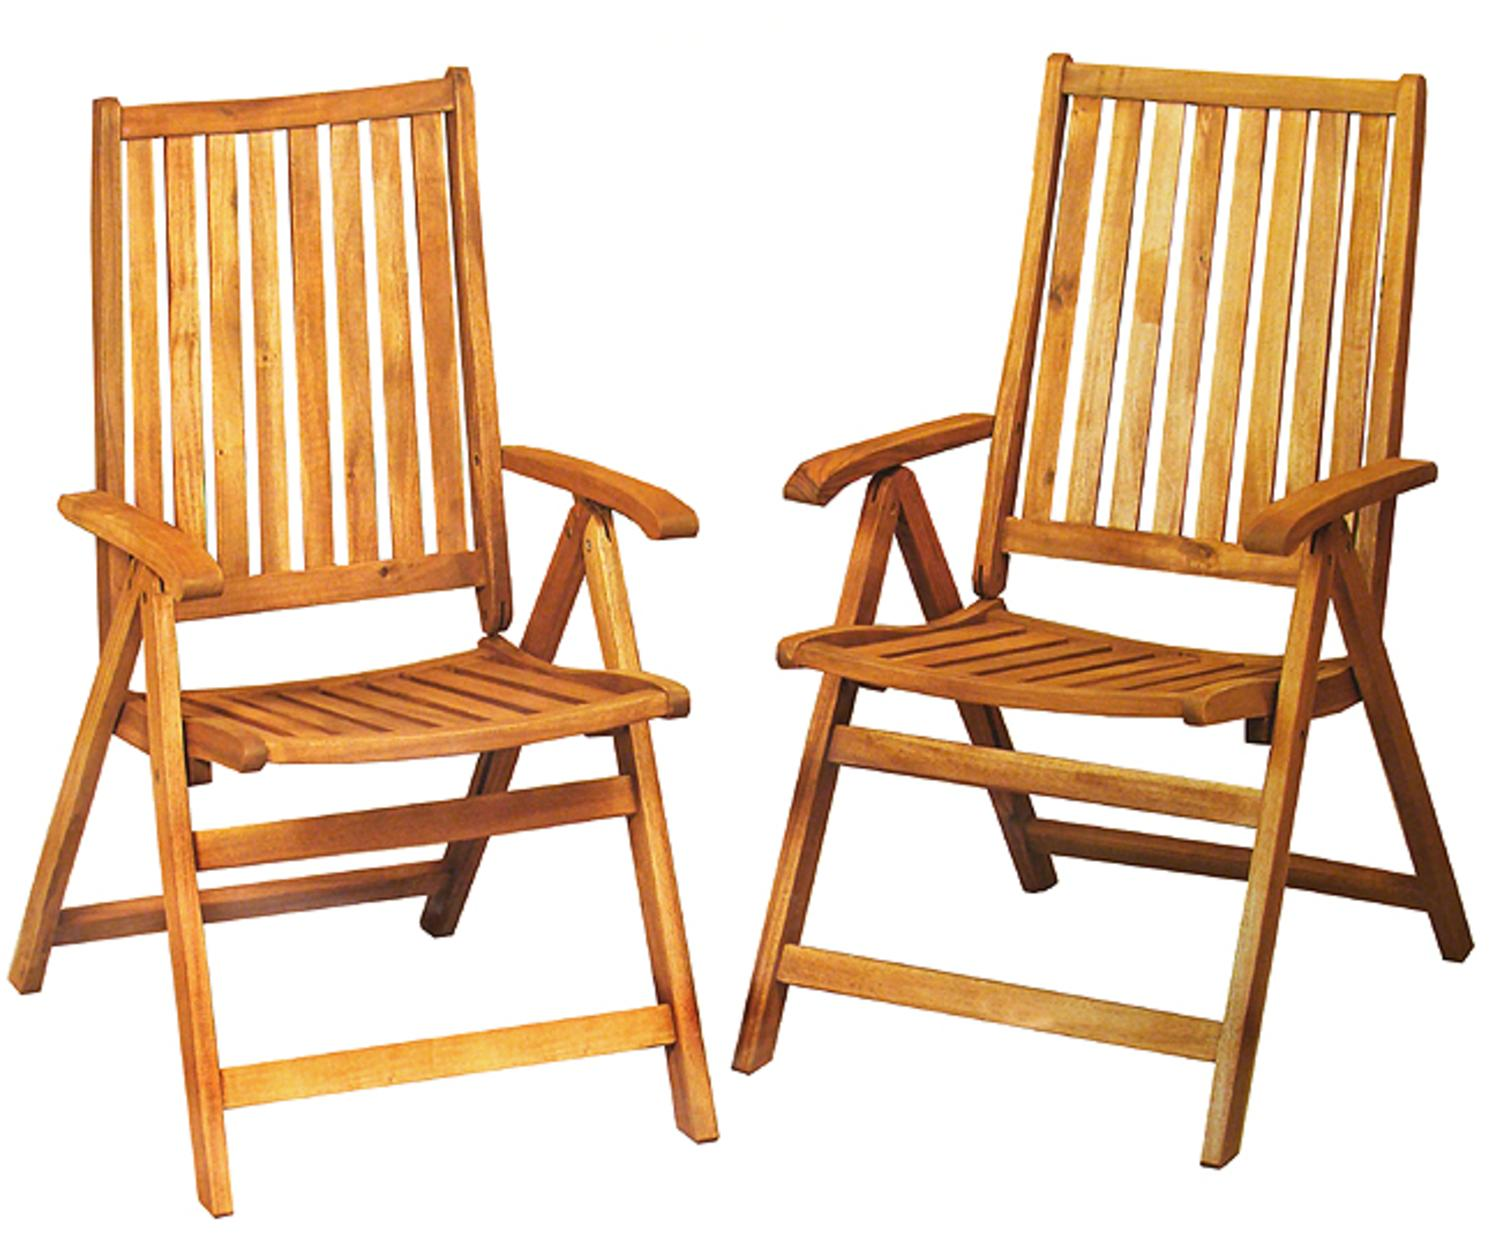 Set Of 2 Acacia Wood Folding Chairs Outdoor Patio